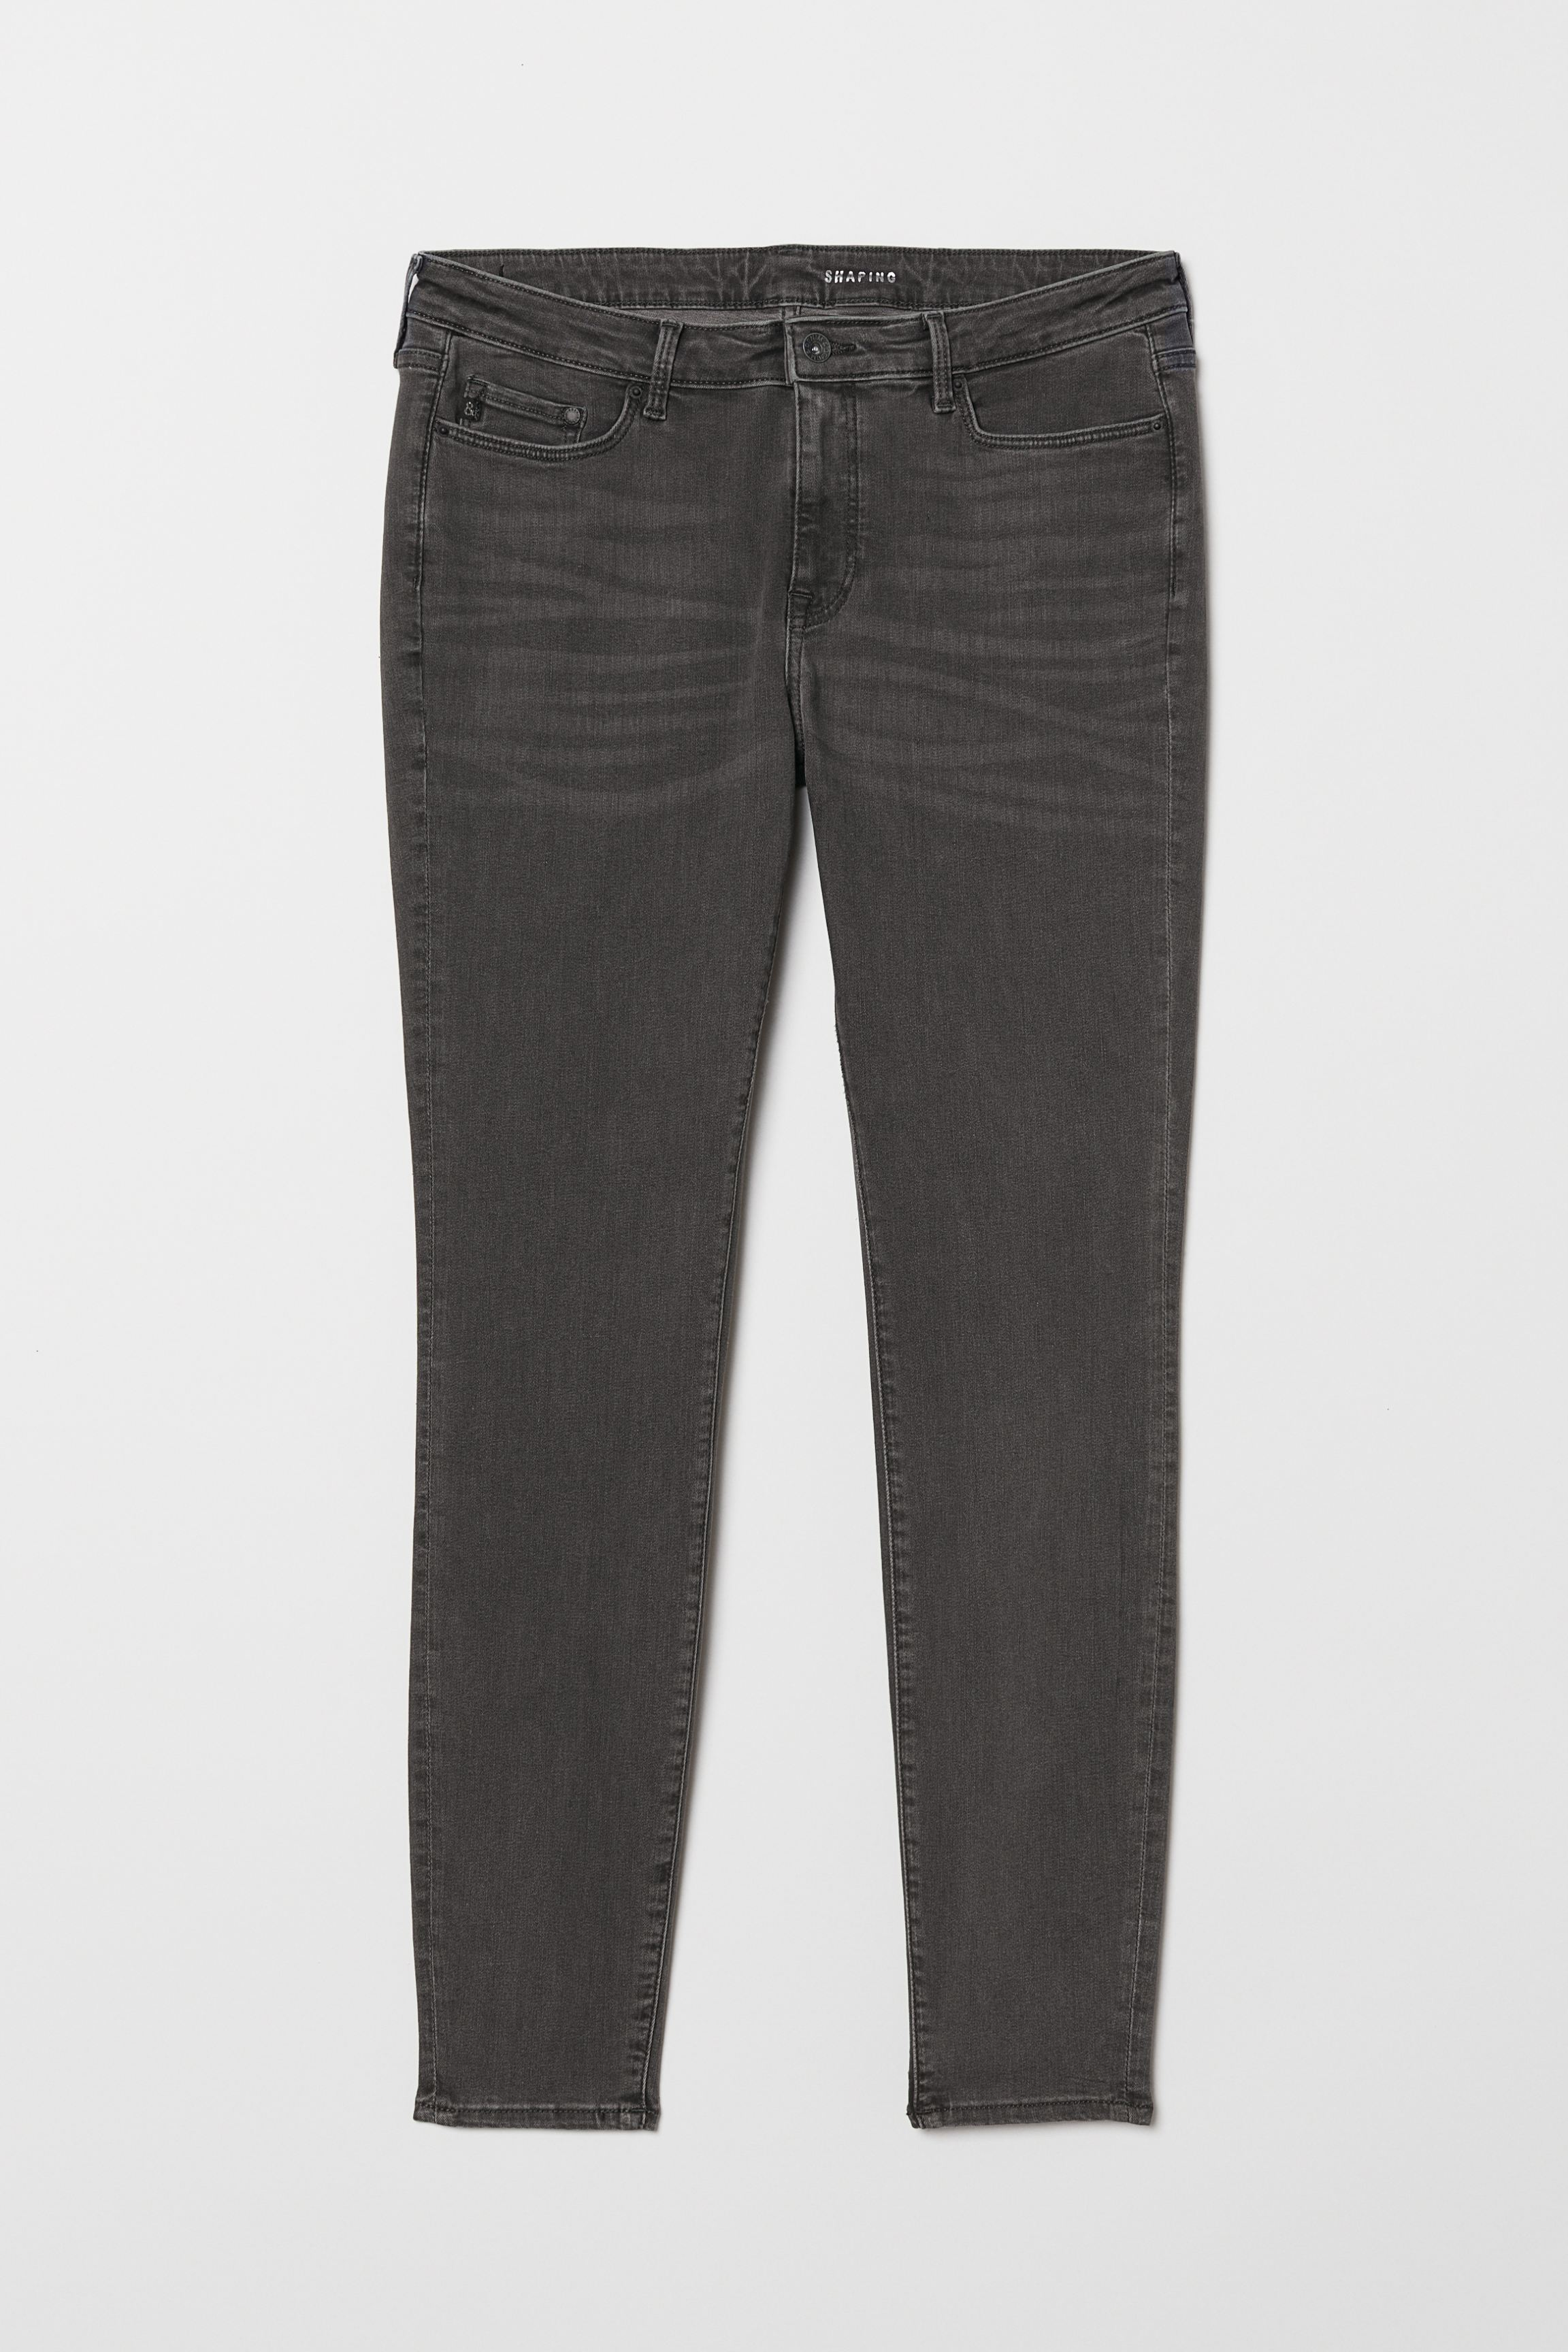 H&M+ Shaping Skinny Jeans